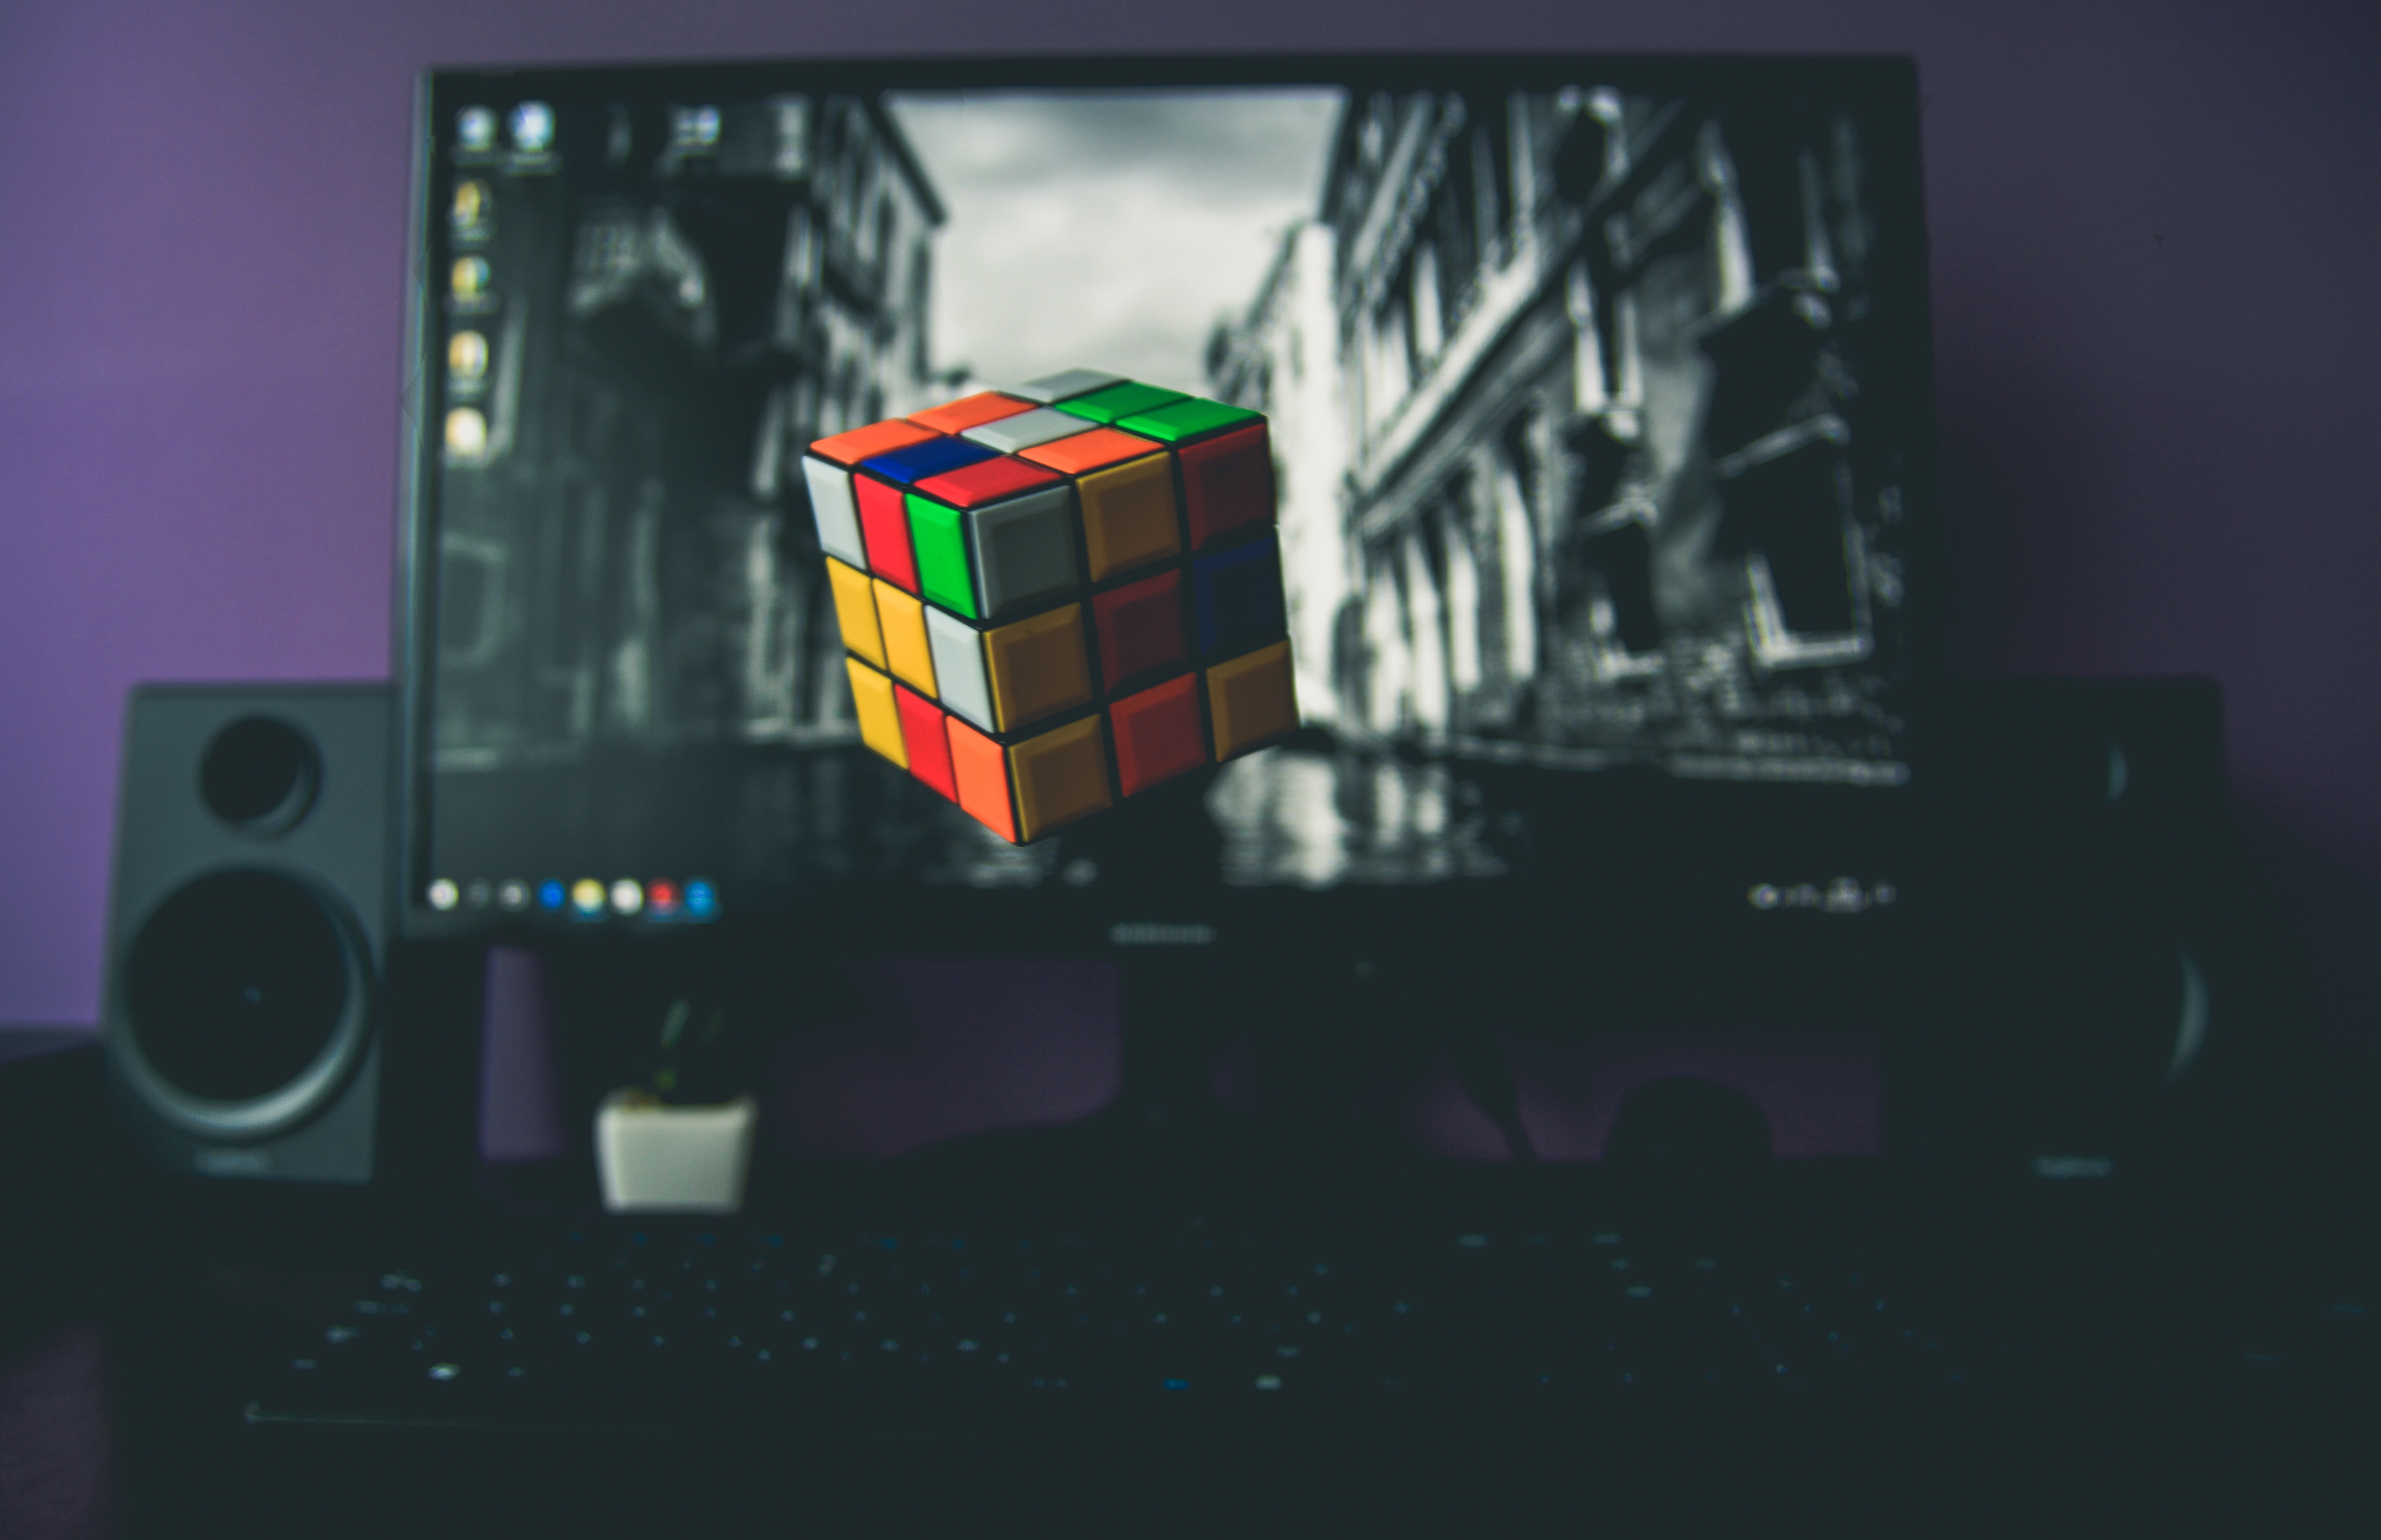 turned on flat screen computer monitor displaying 3x3 Rubik's cube